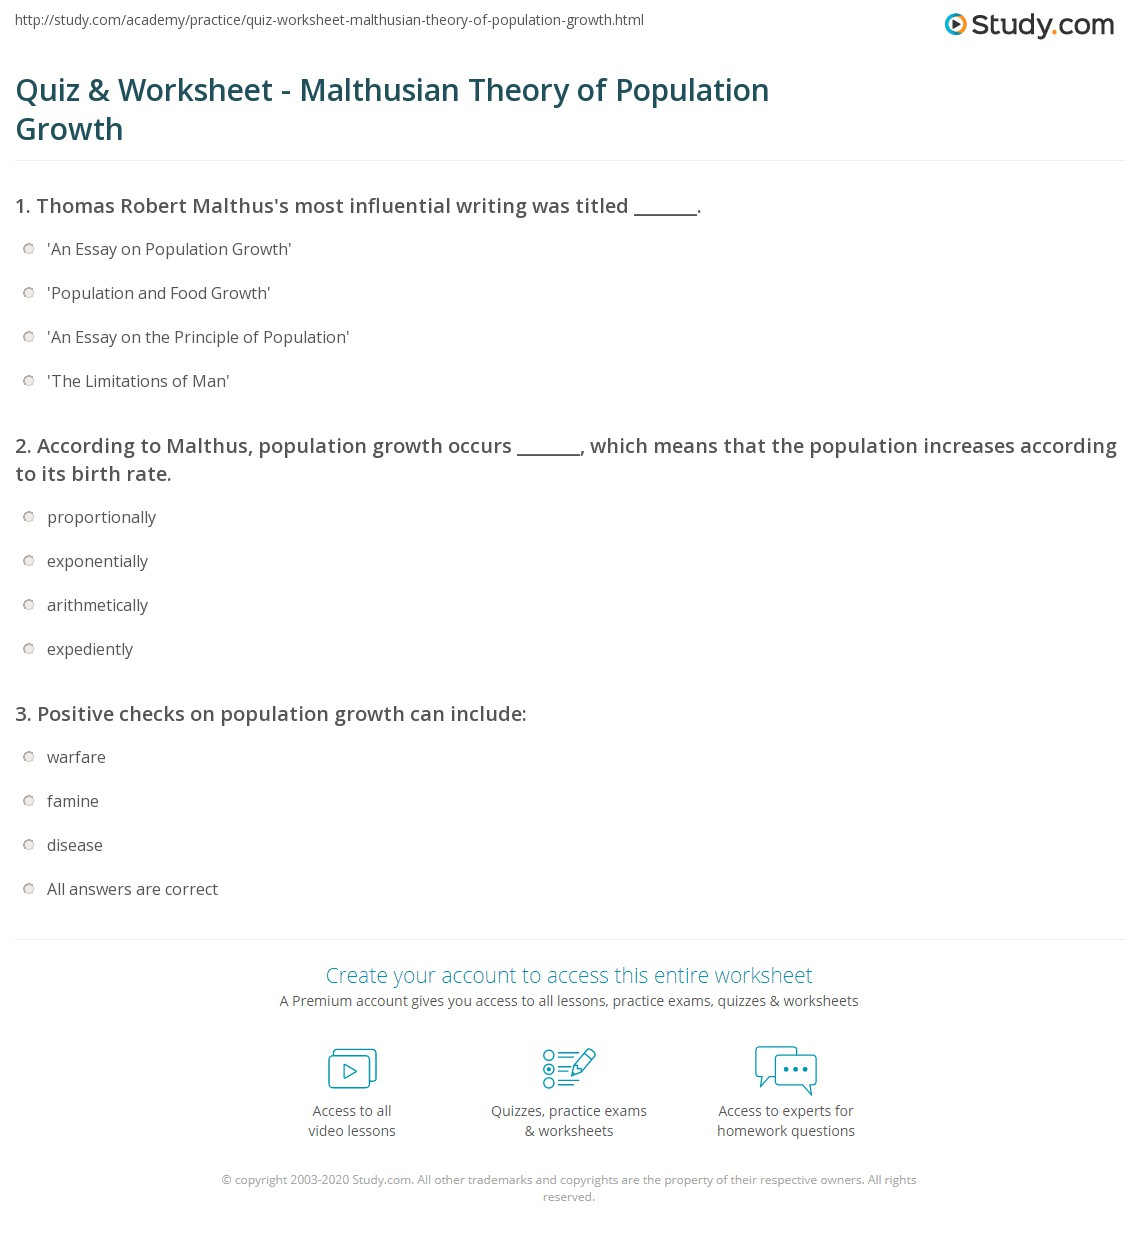 Quiz Worksheet Malthusian Theory Of Population Growth